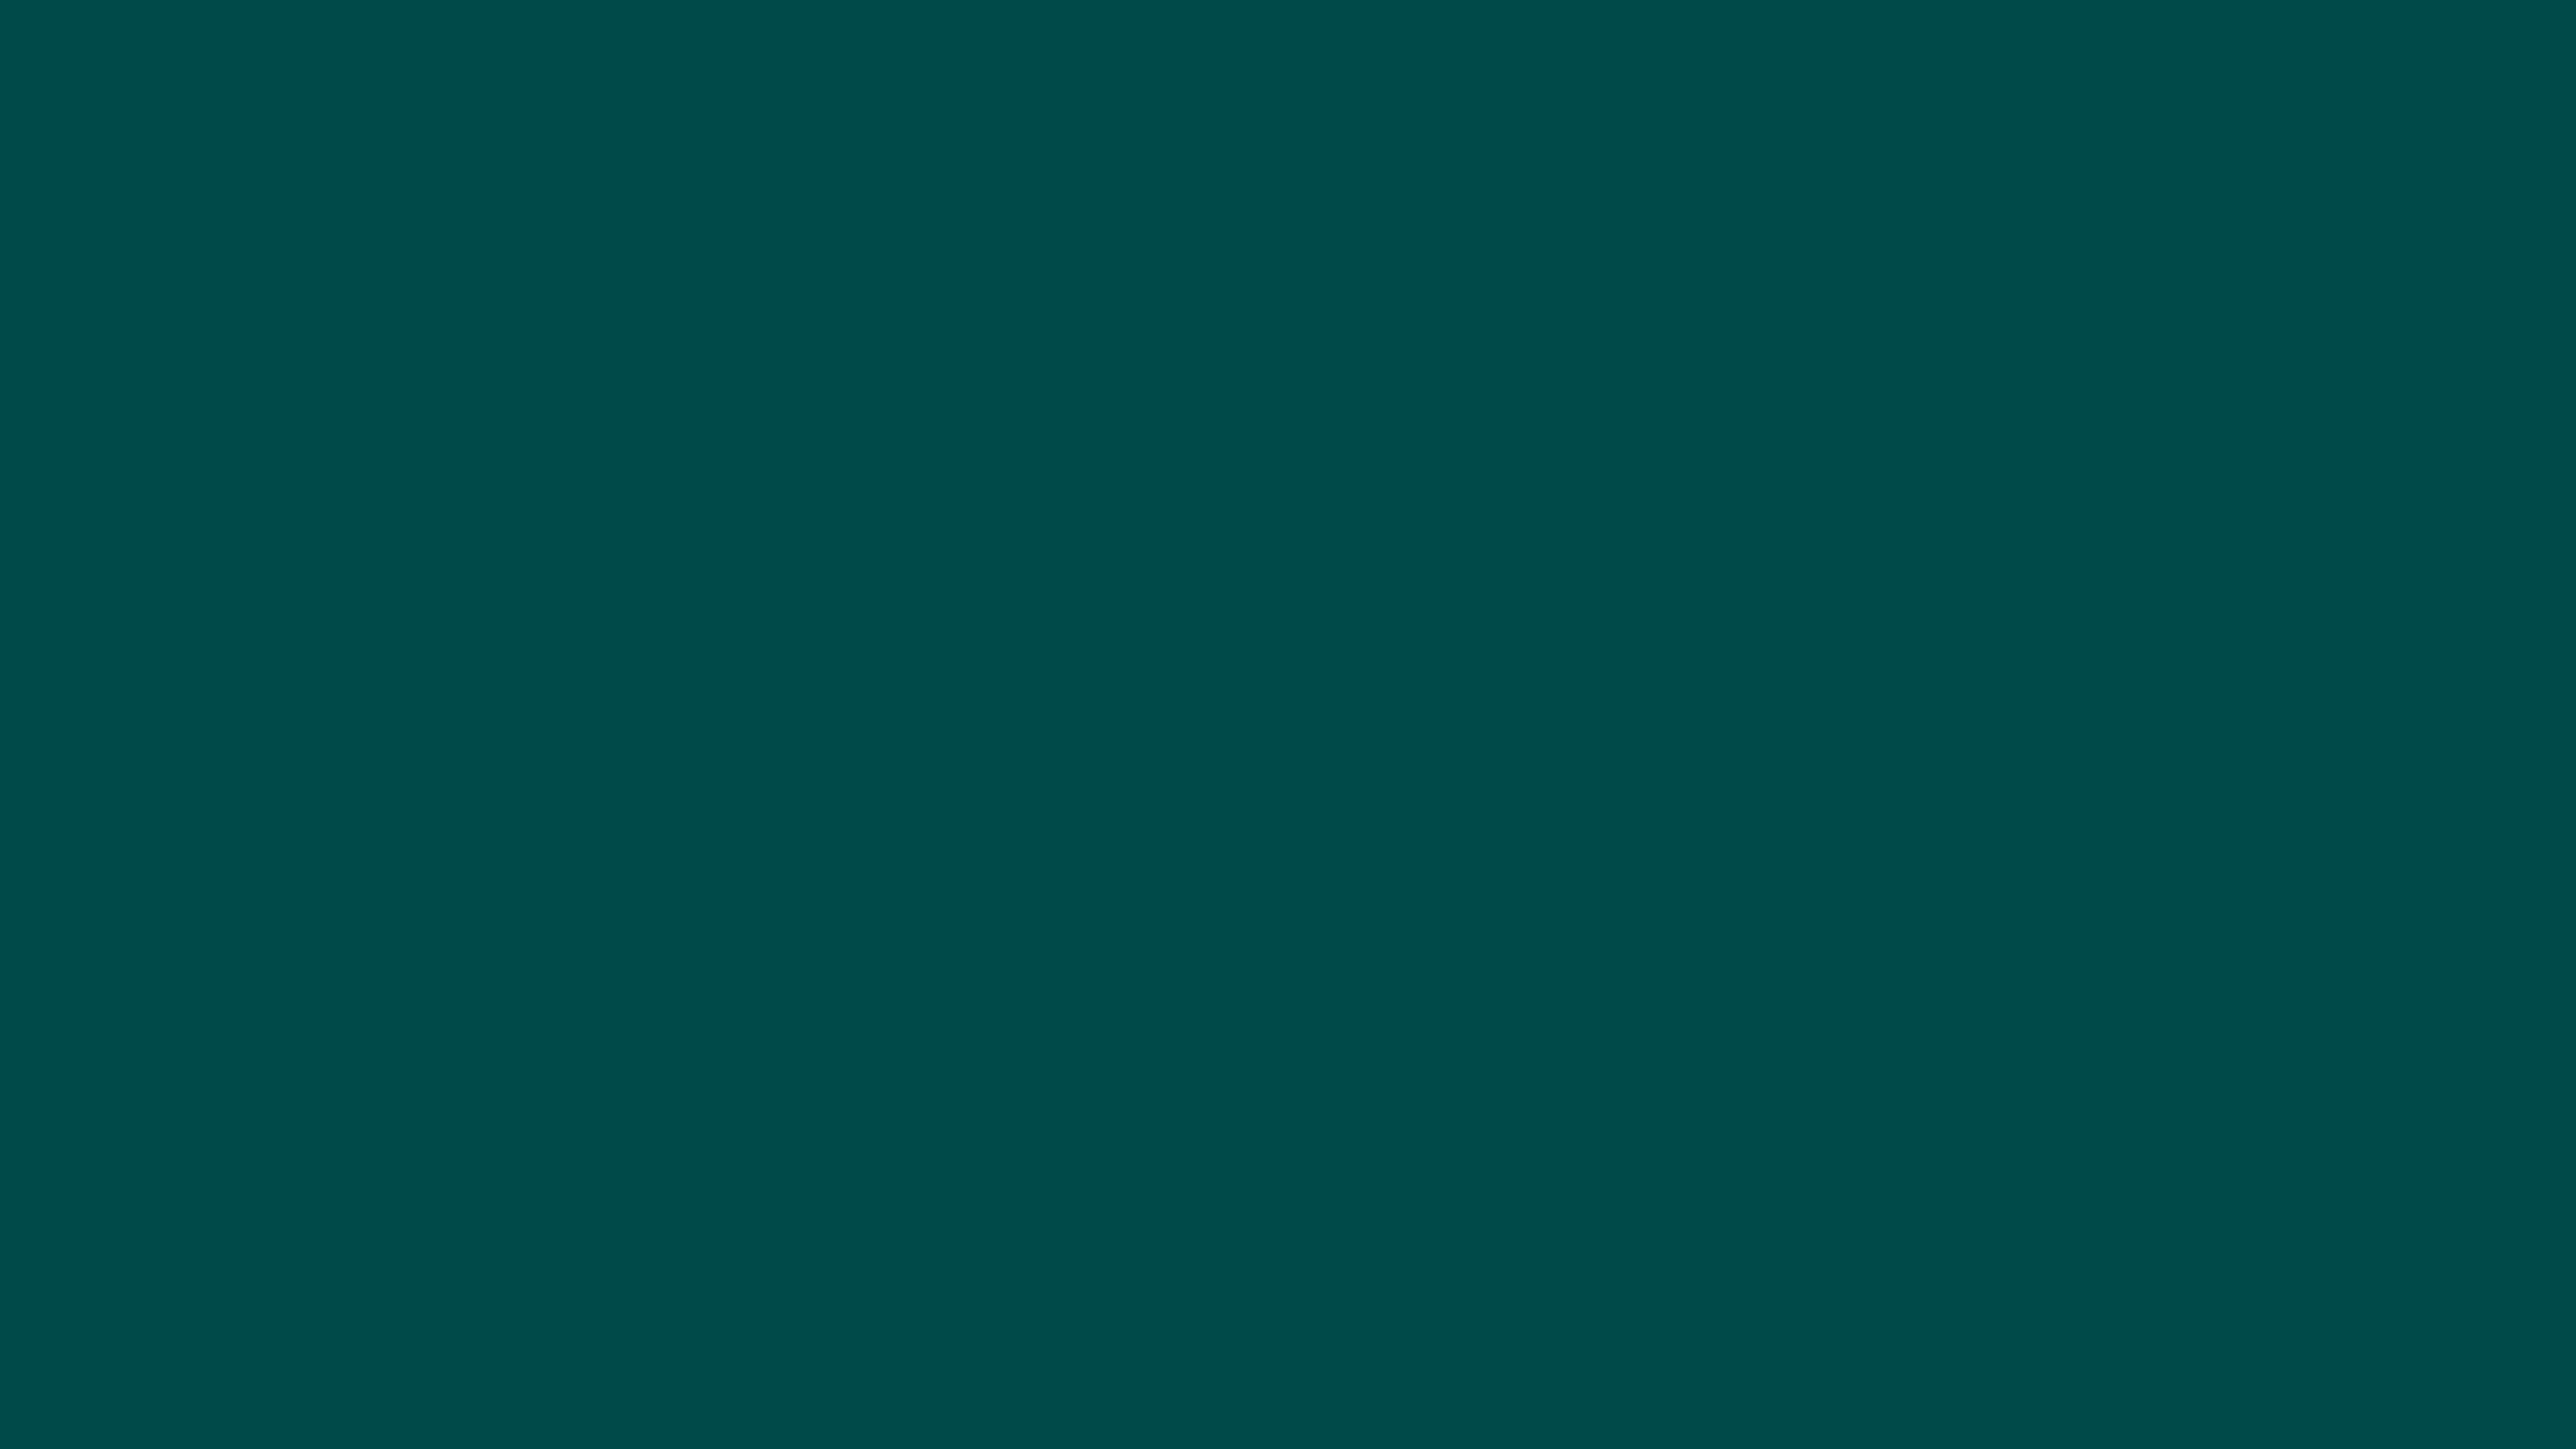 4096x2304 Deep Jungle Green Solid Color Background